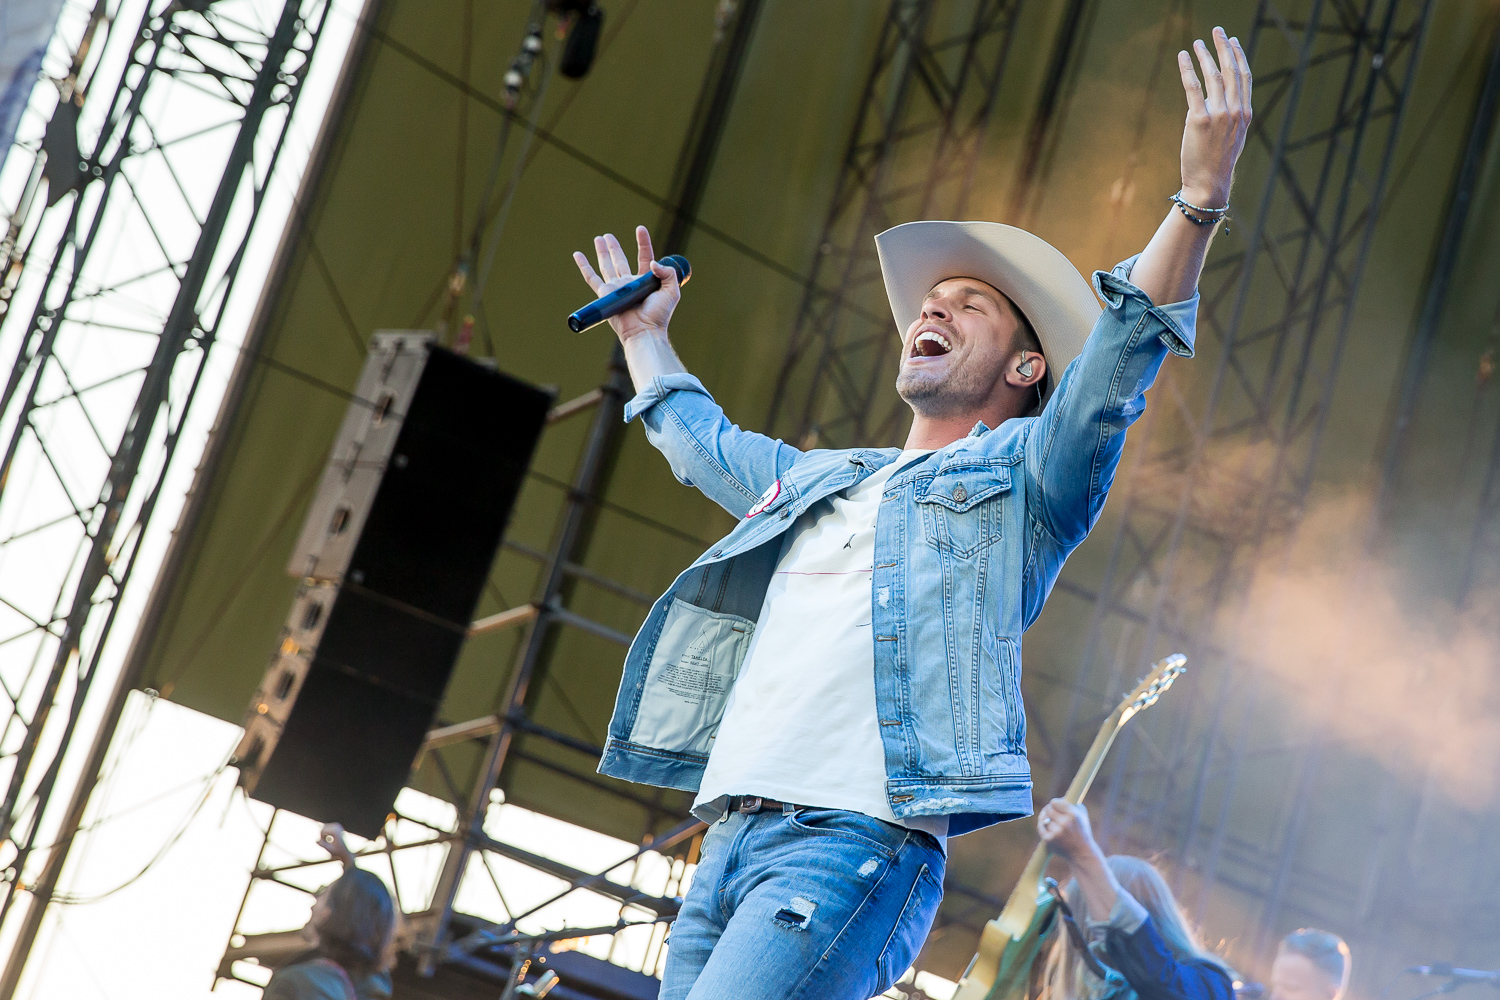 Dustin Lynch at the Watershed Music Festival 2018 at The Gorge Amphitheatre. (Photo by David Conger / davidconger.com)